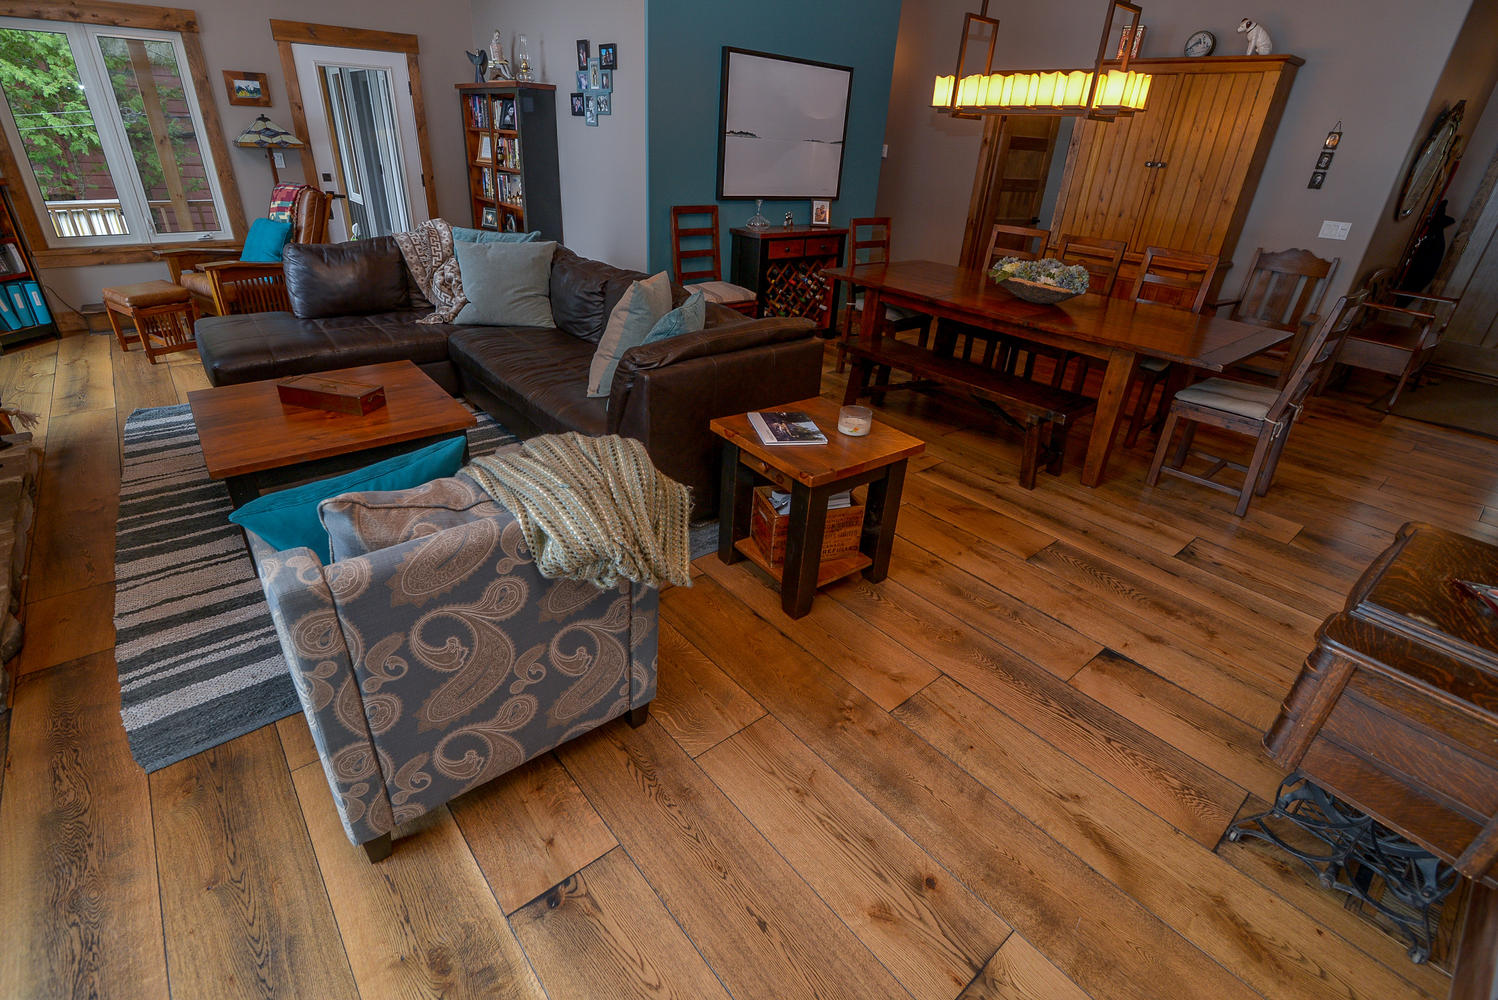 Pictures of Wide plank white oak flooring from planks up to a foot wide